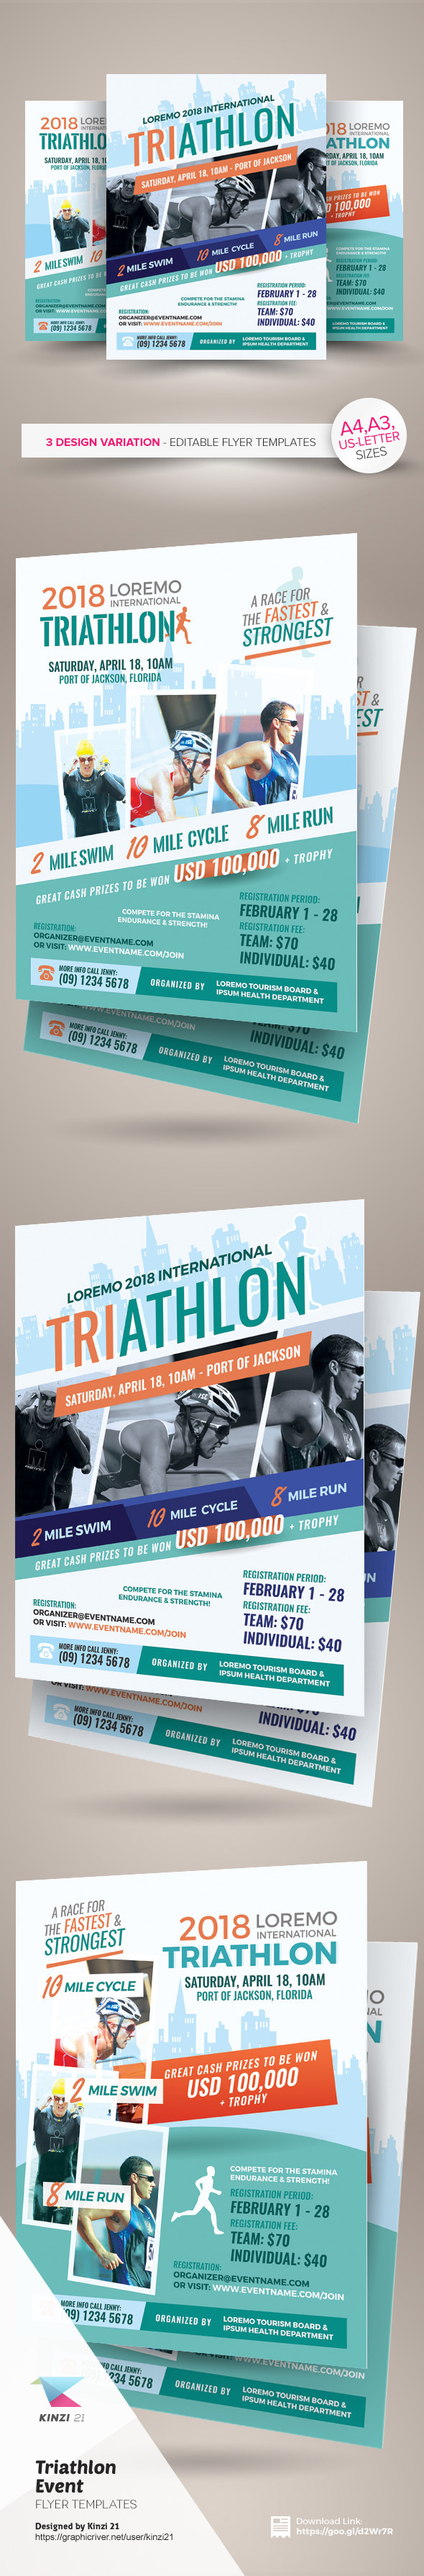 triathlon event flyer and poster templates on behance triathlon event flyer and poster templates are fully editable design templates created for on graphic river more info of the templates and how to get